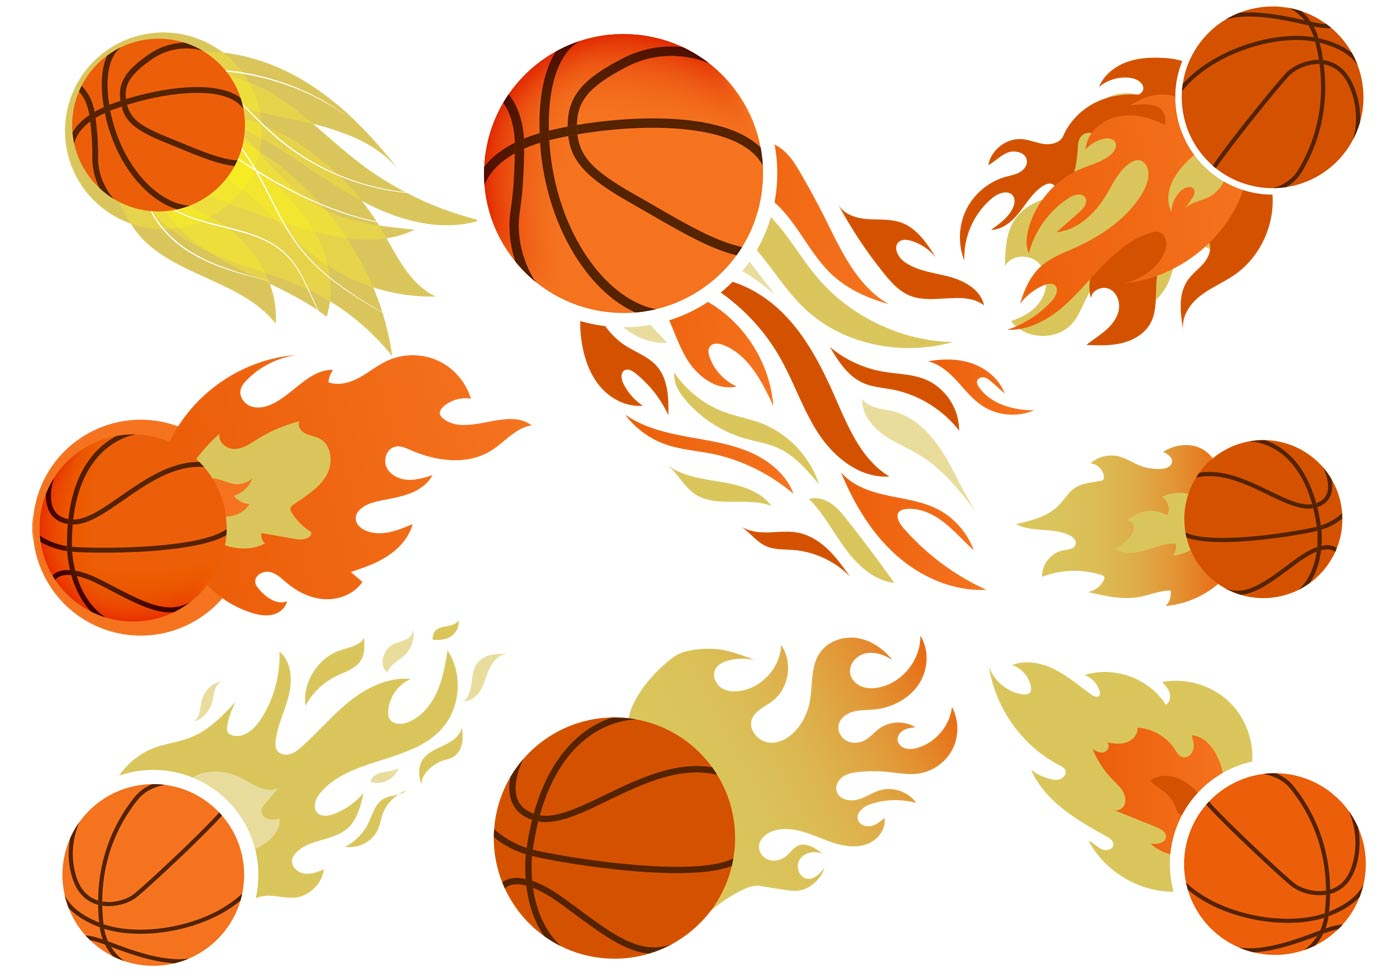 basketball on fire free vector download free vector art baseball jersey clip art basketball jersey clipart